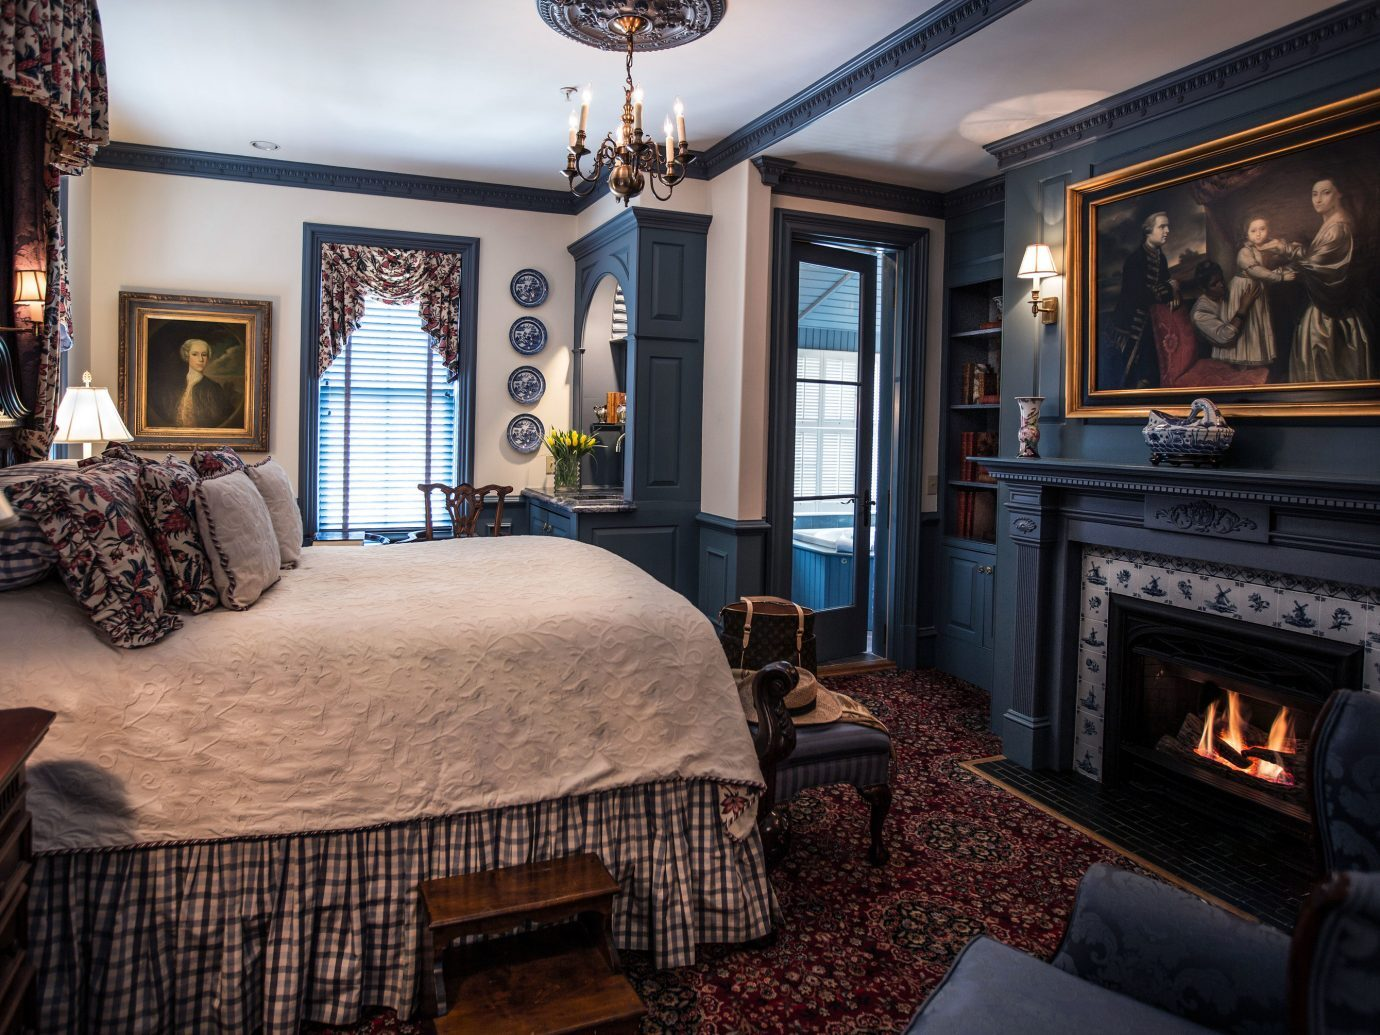 Bedroom at The Chanler at Cliff Walk